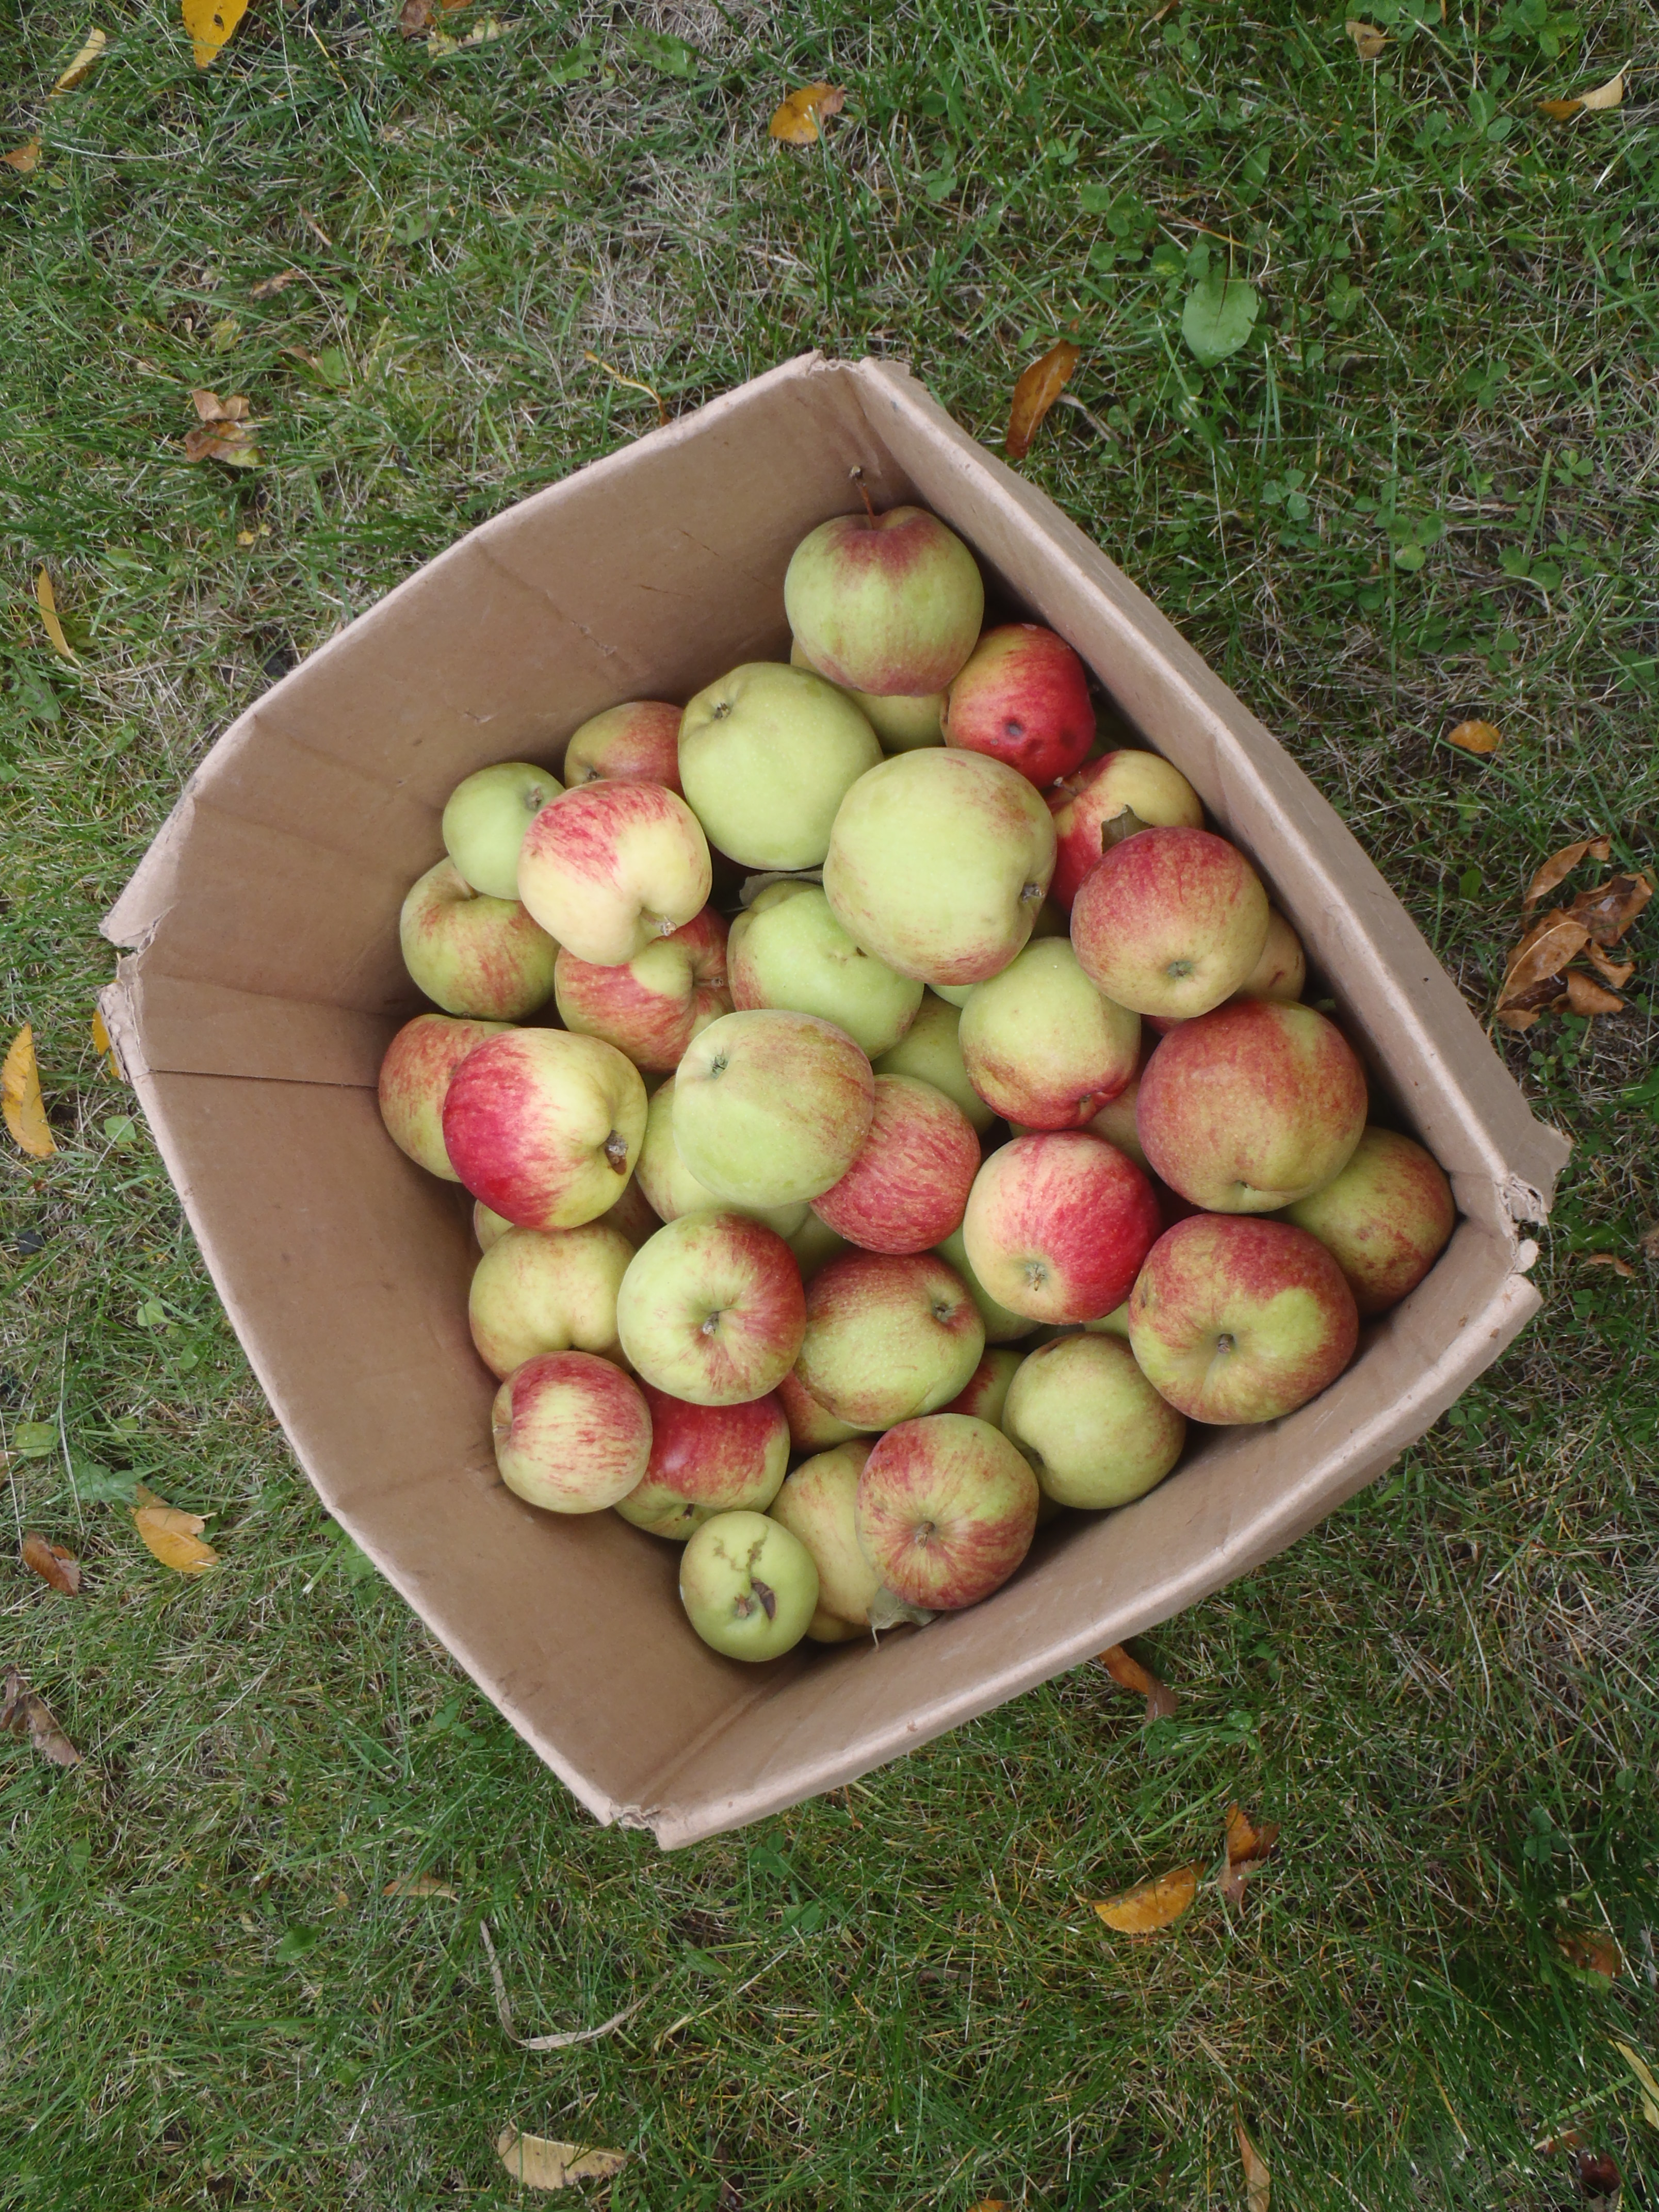 A box of apples from a neighbour's tree